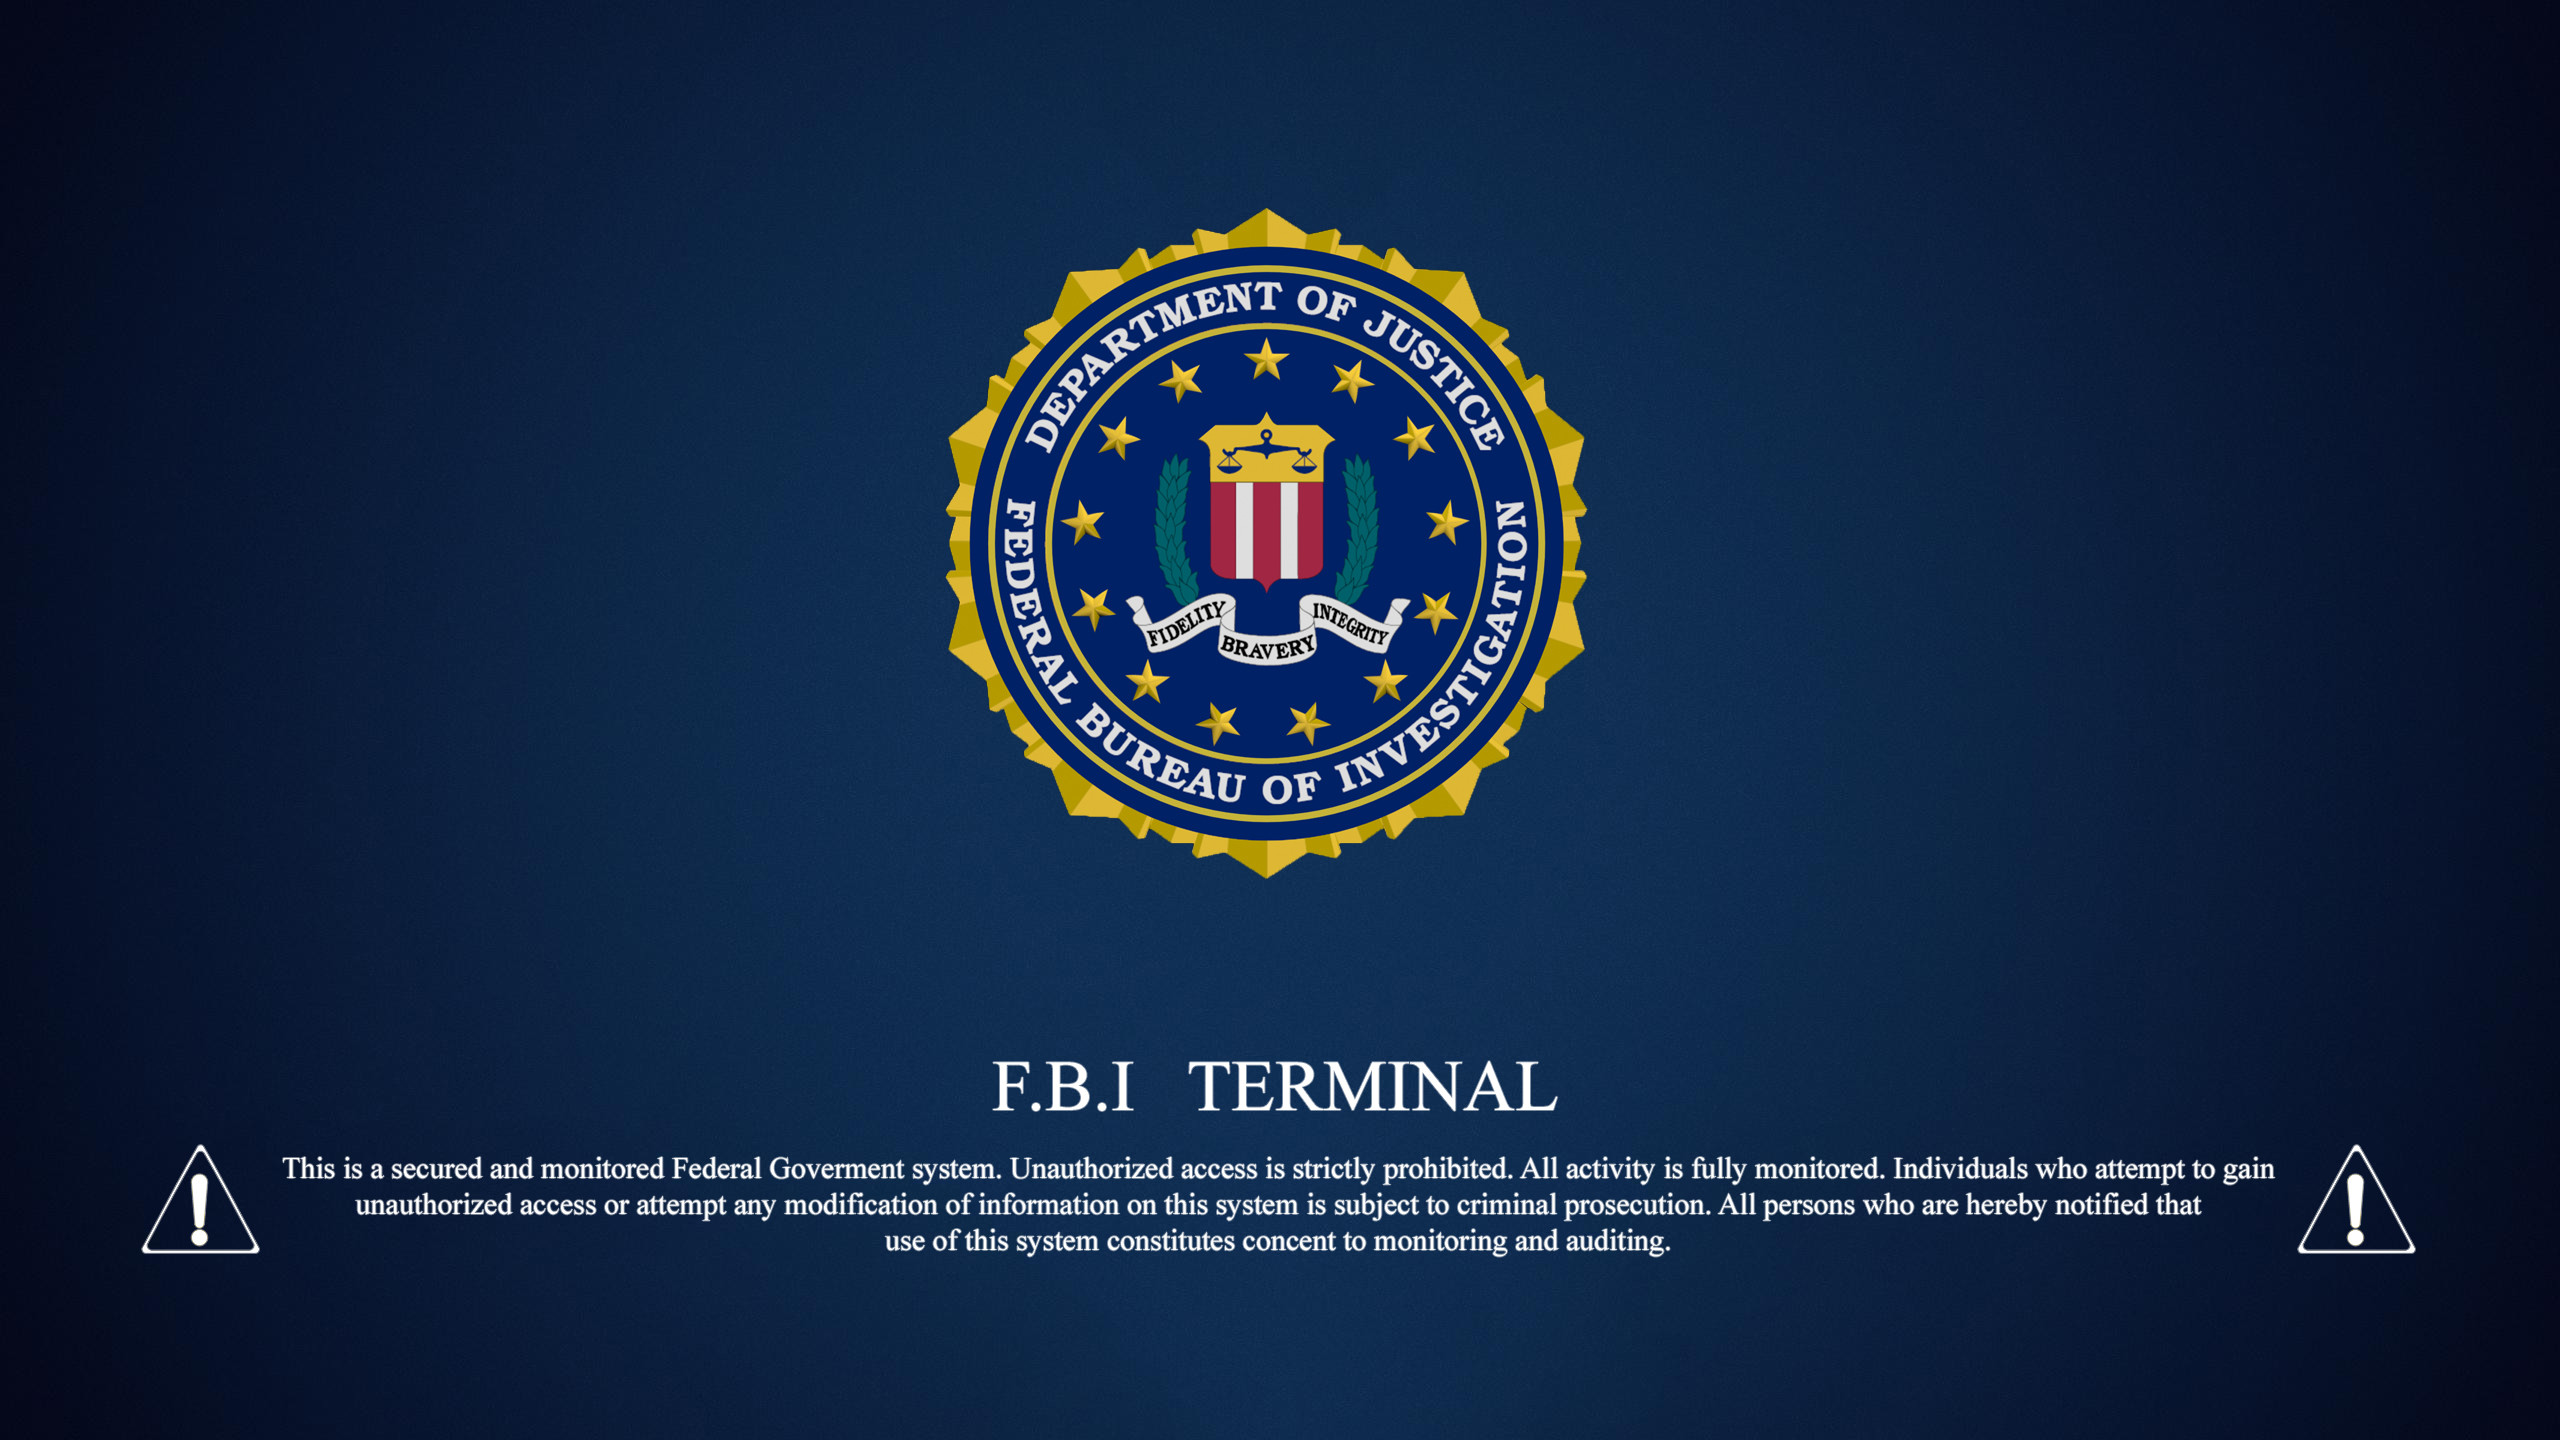 Amazing Computer Wallpapers Quotes Fbi Wallpapers Hd 65 Images